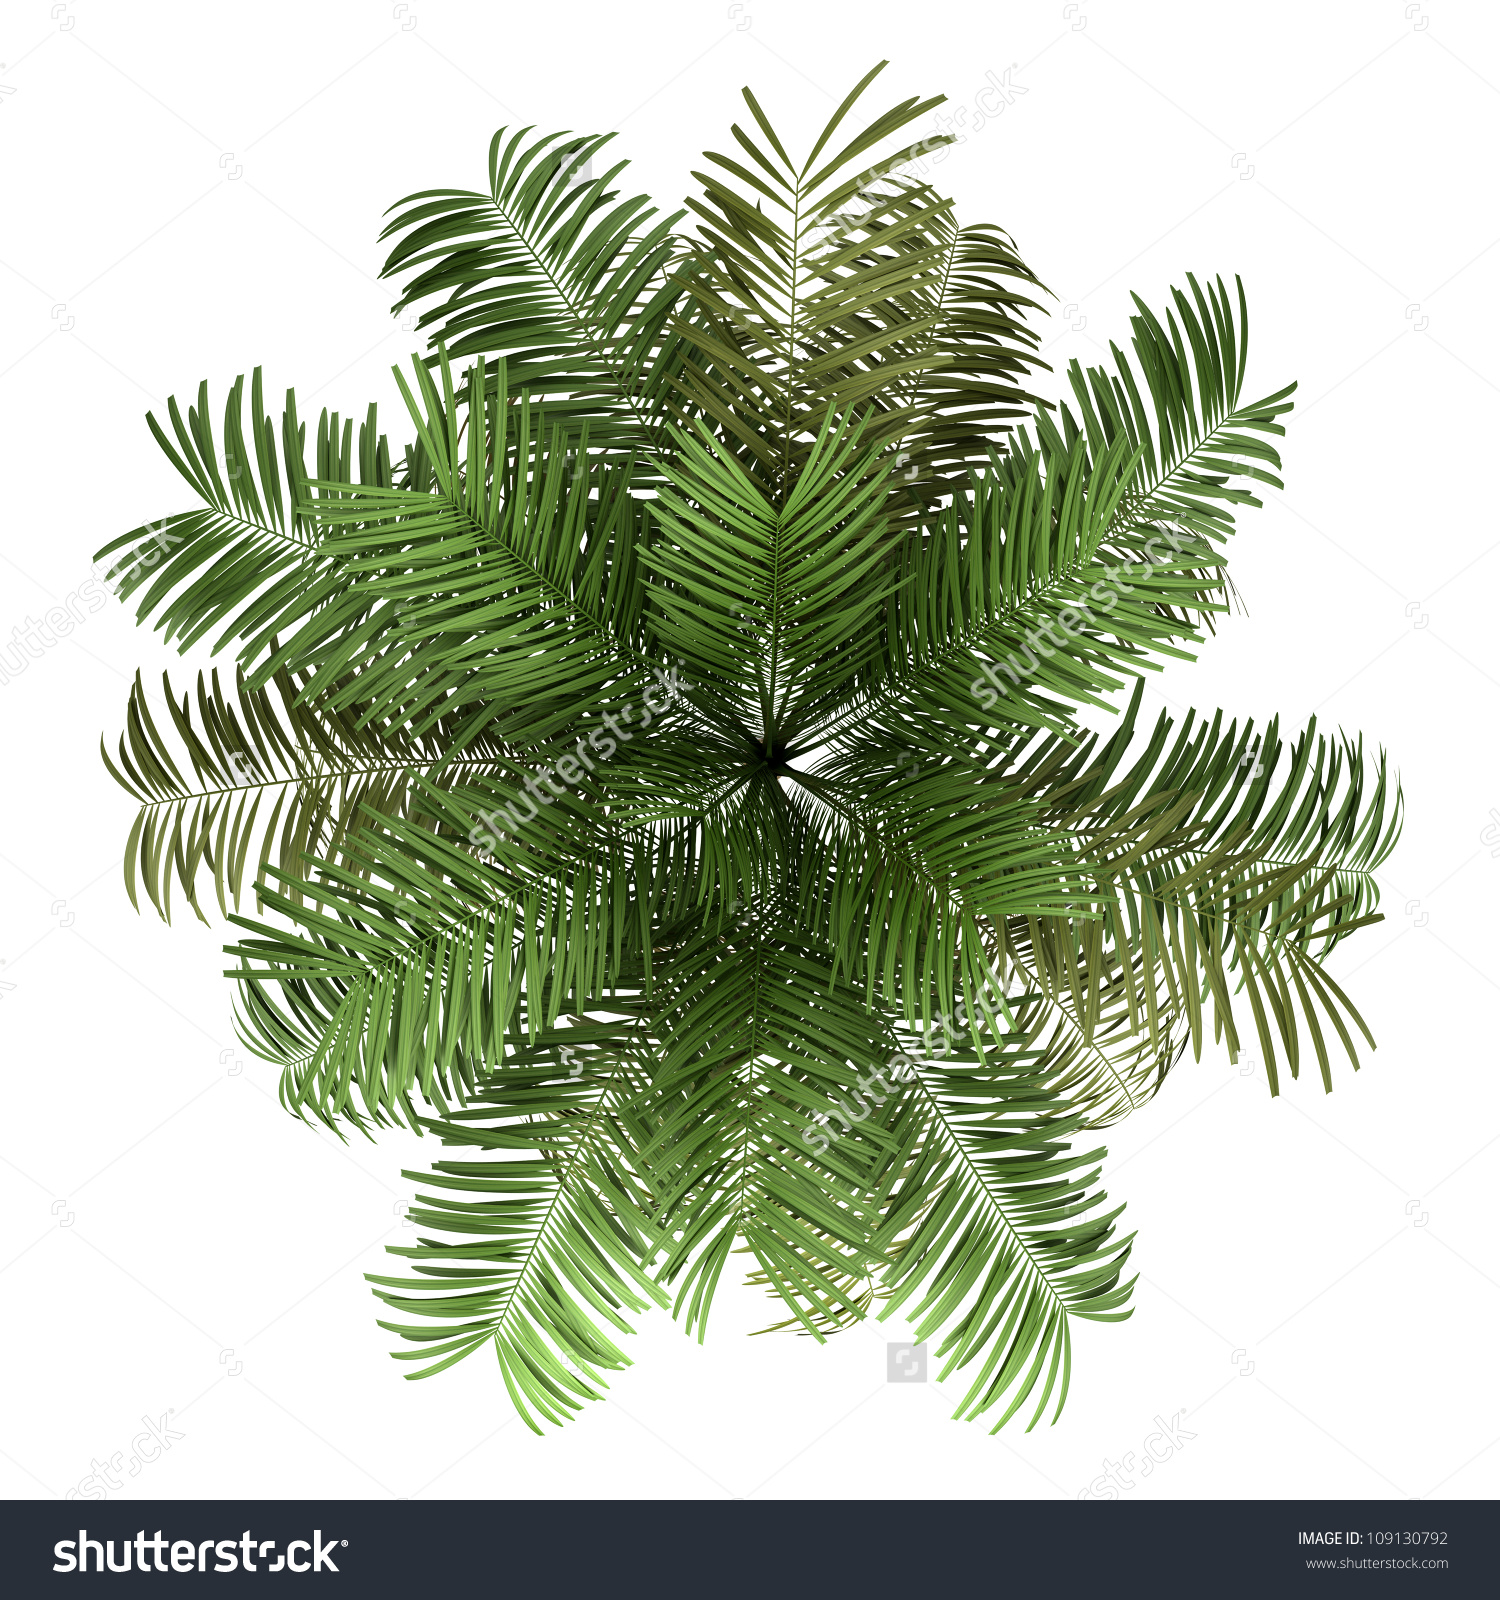 Top View Areca Palm Tree Isolated Stock Illustration 109130792.